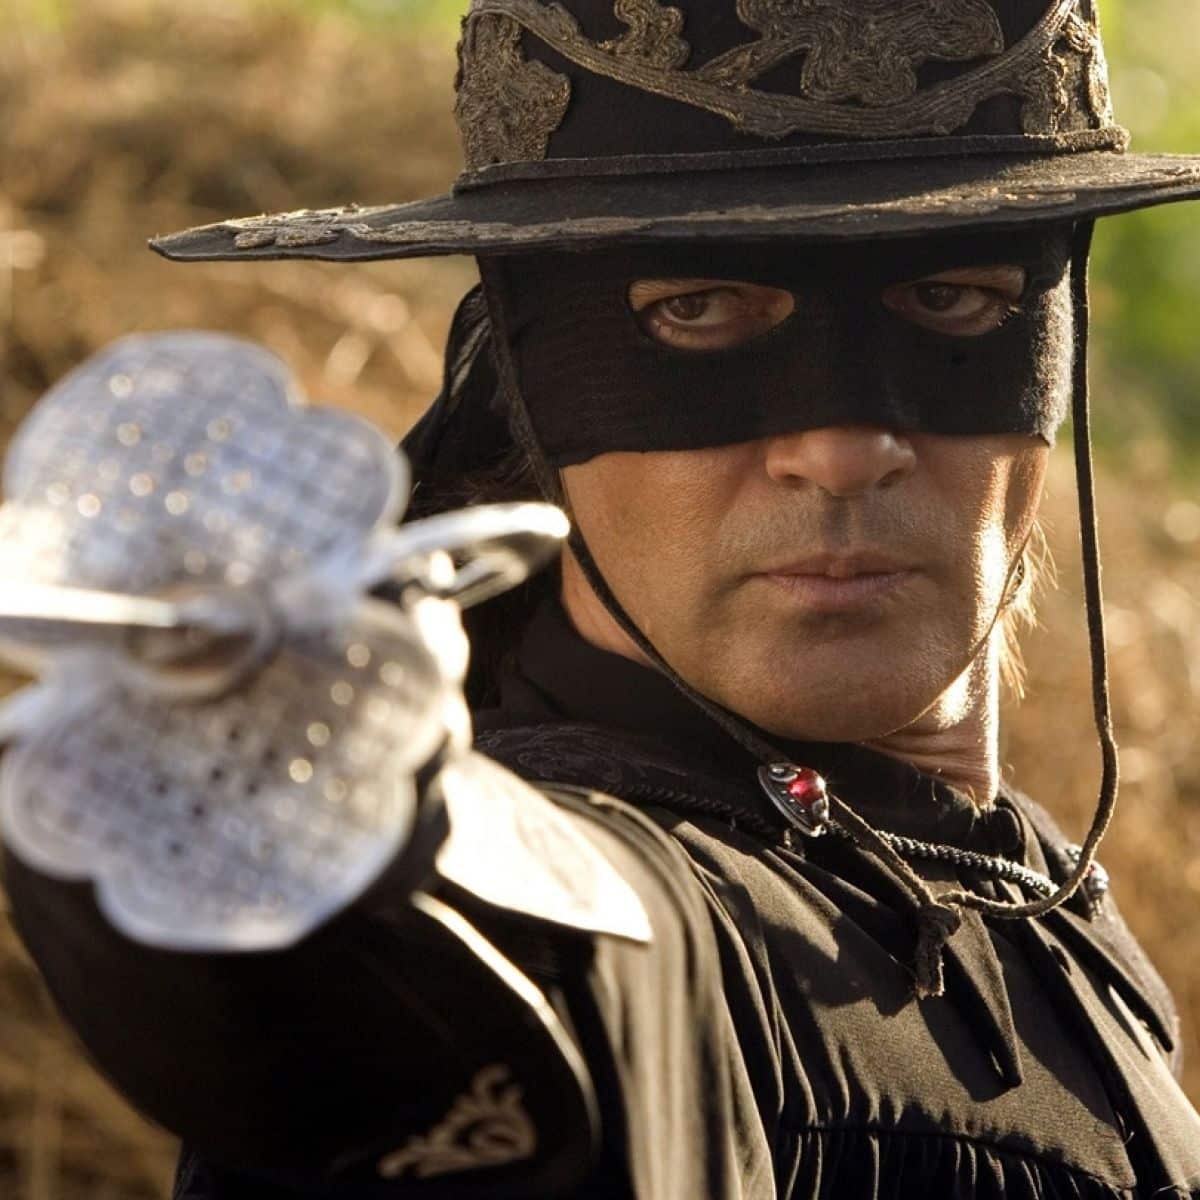 image 14 The Mask Of Zorro: 20 Facts About The Film That Will Really Leave A Mark